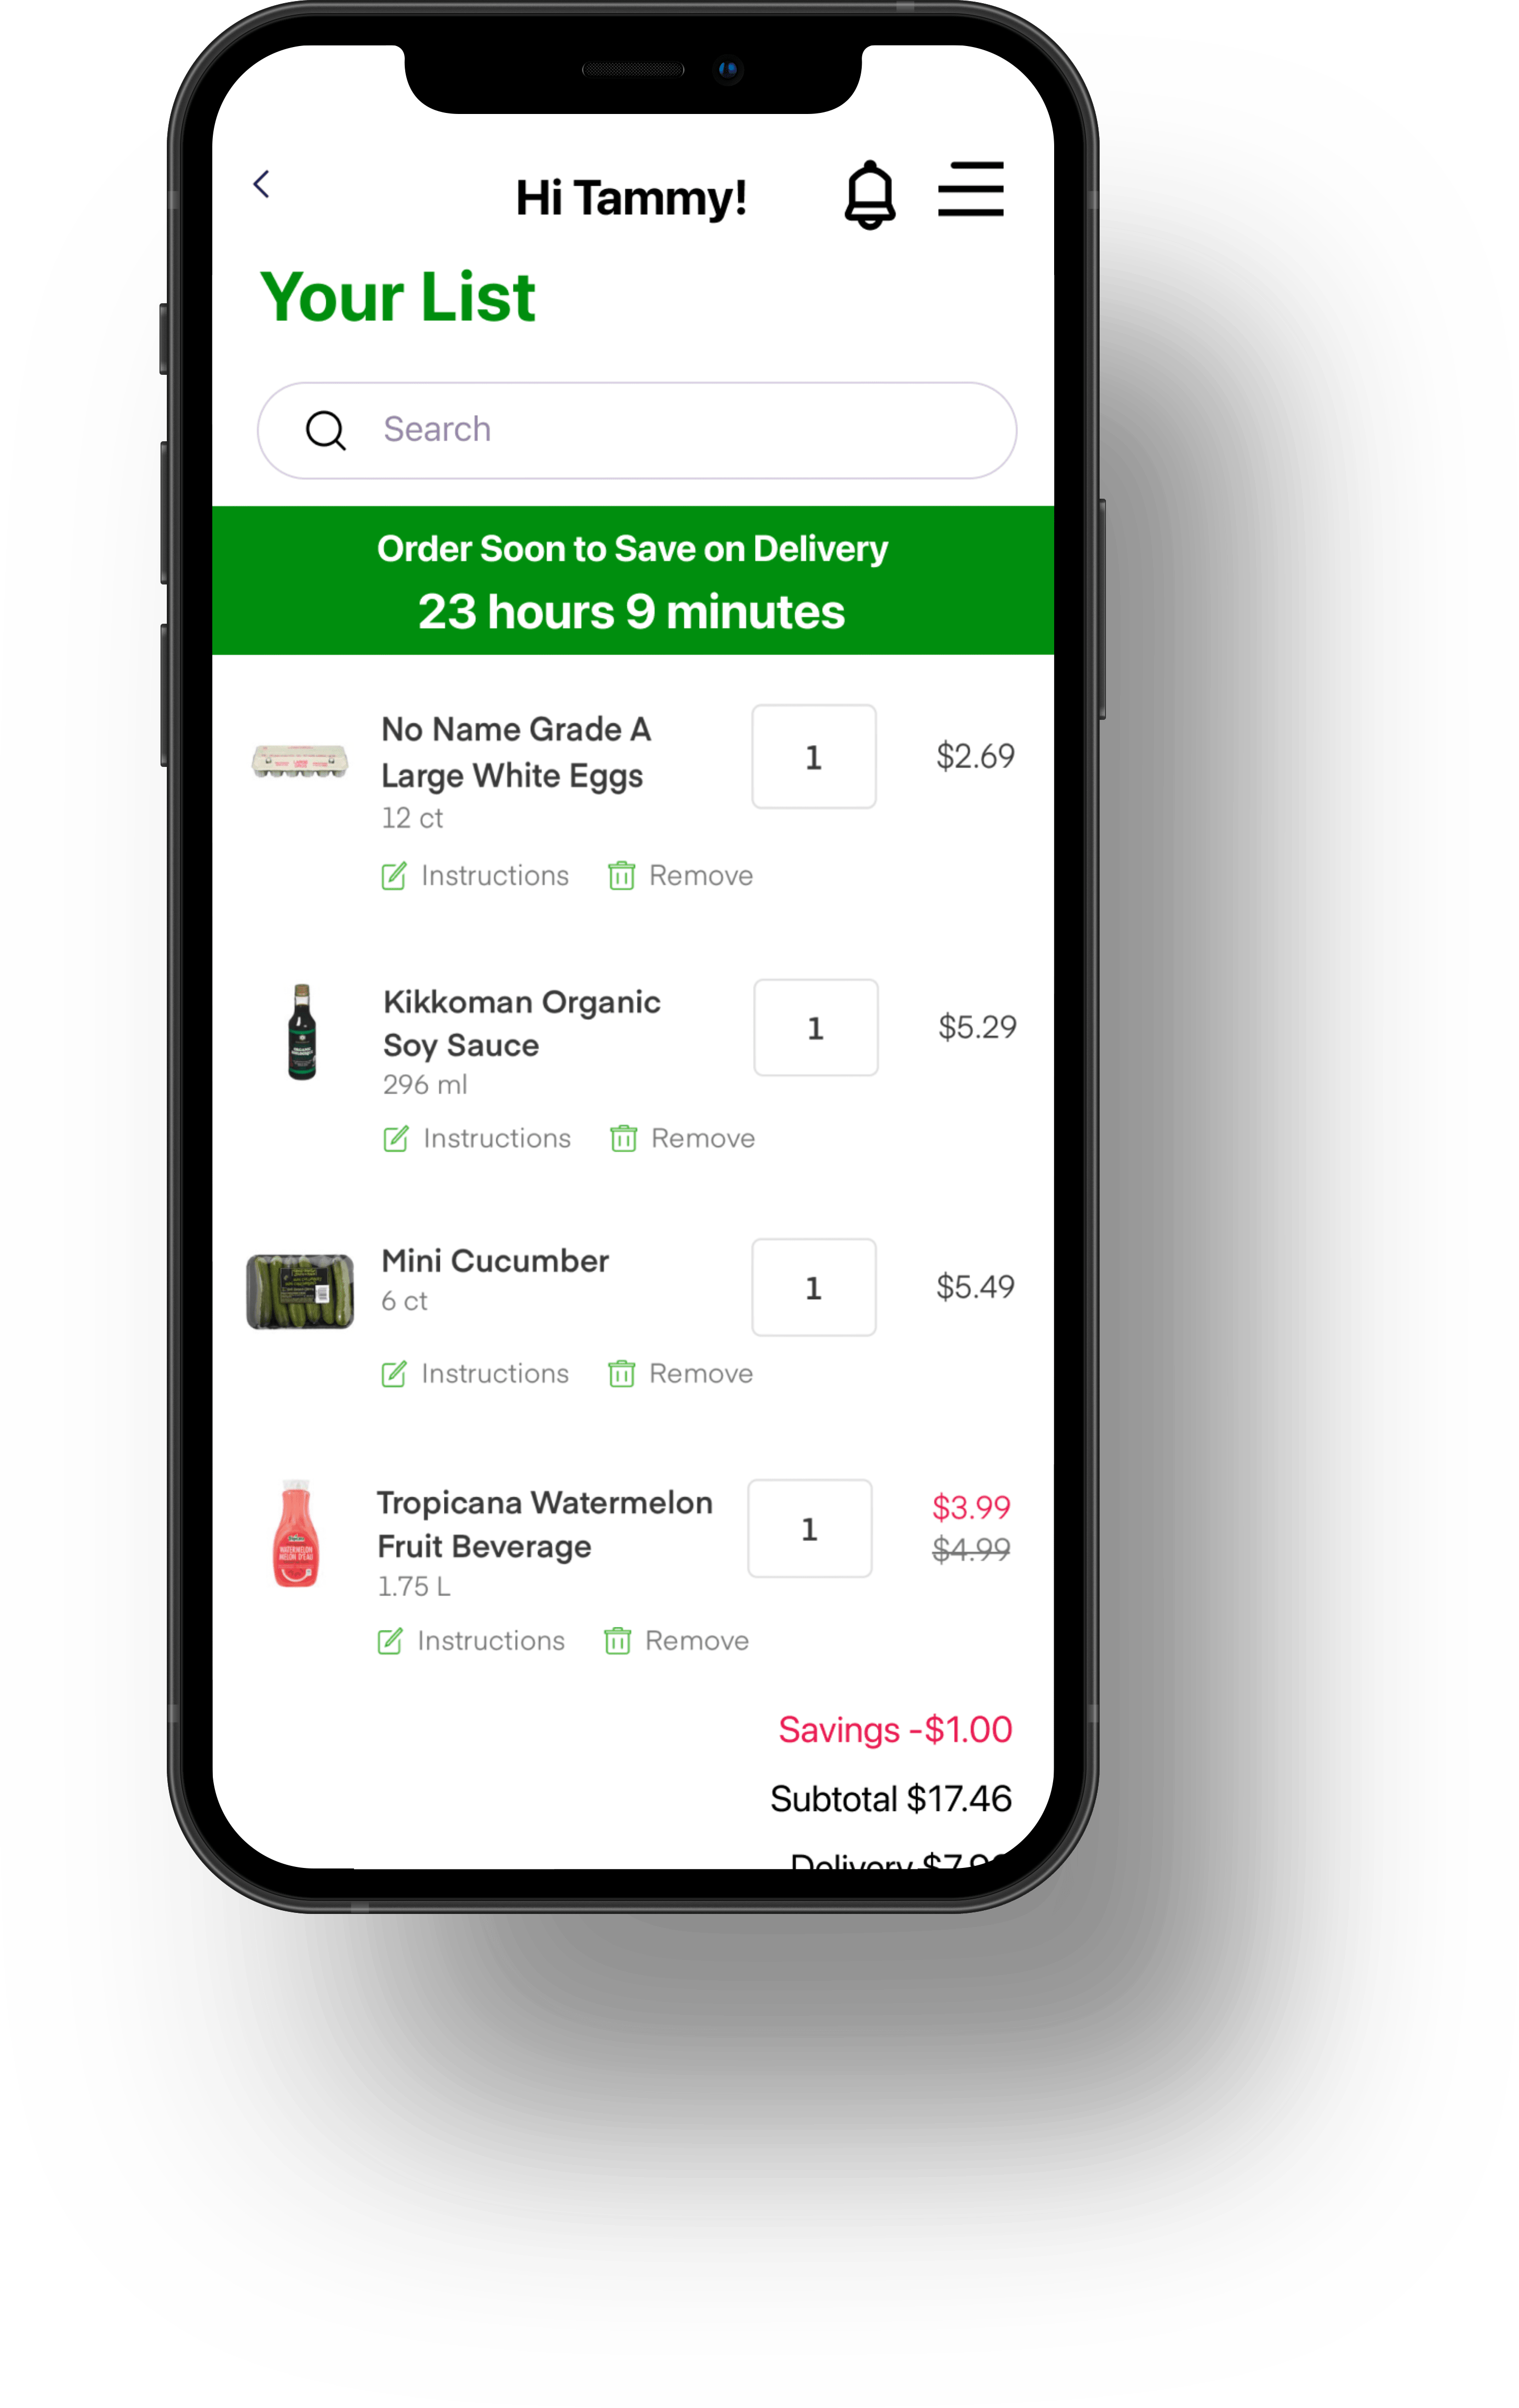 A prototype image of the checkout function of the Walmart grocery delivery app